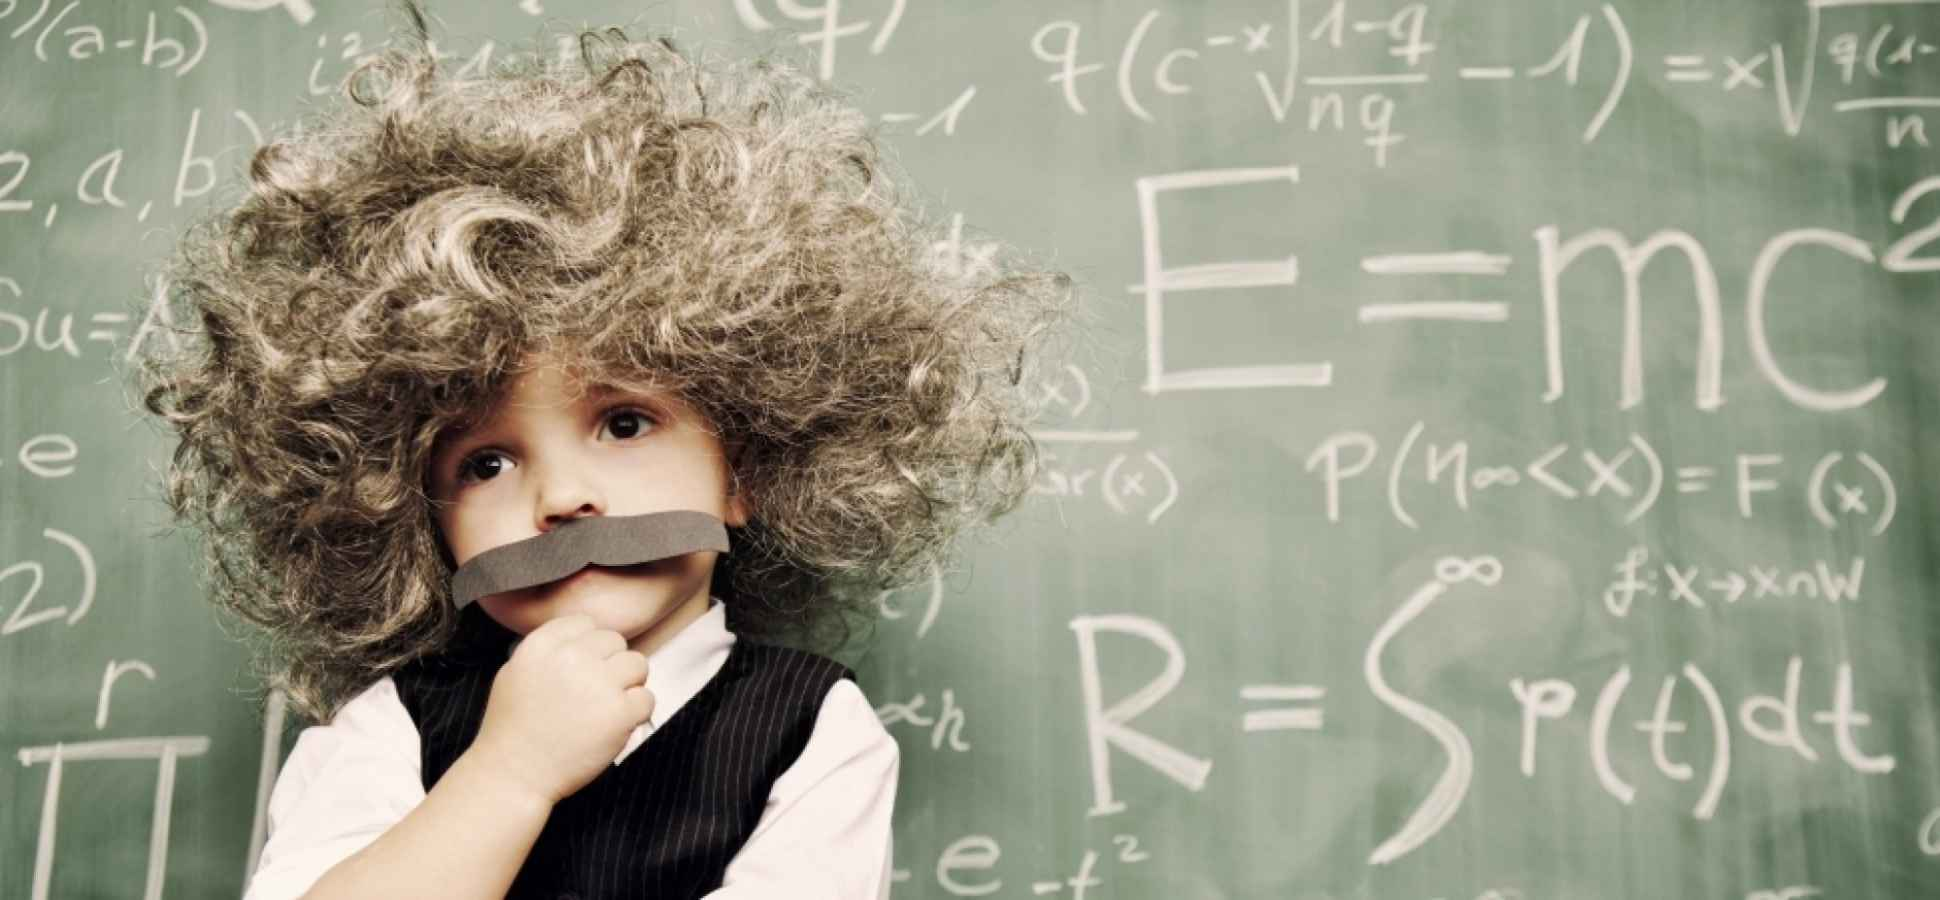 4 Reasons You Should Never Stop Learning